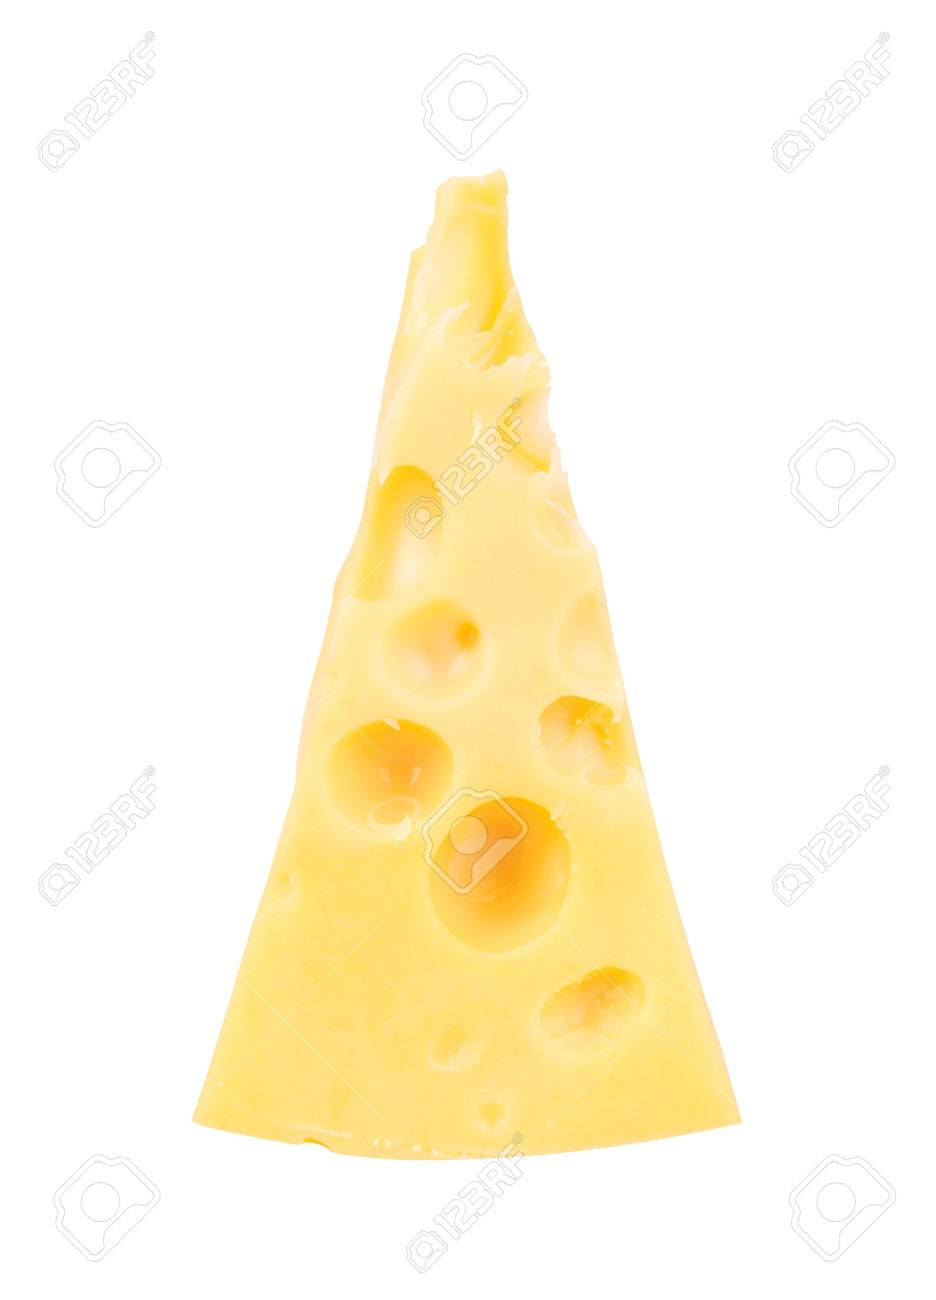 Piece of Cheese isolated on a white background - 26869619